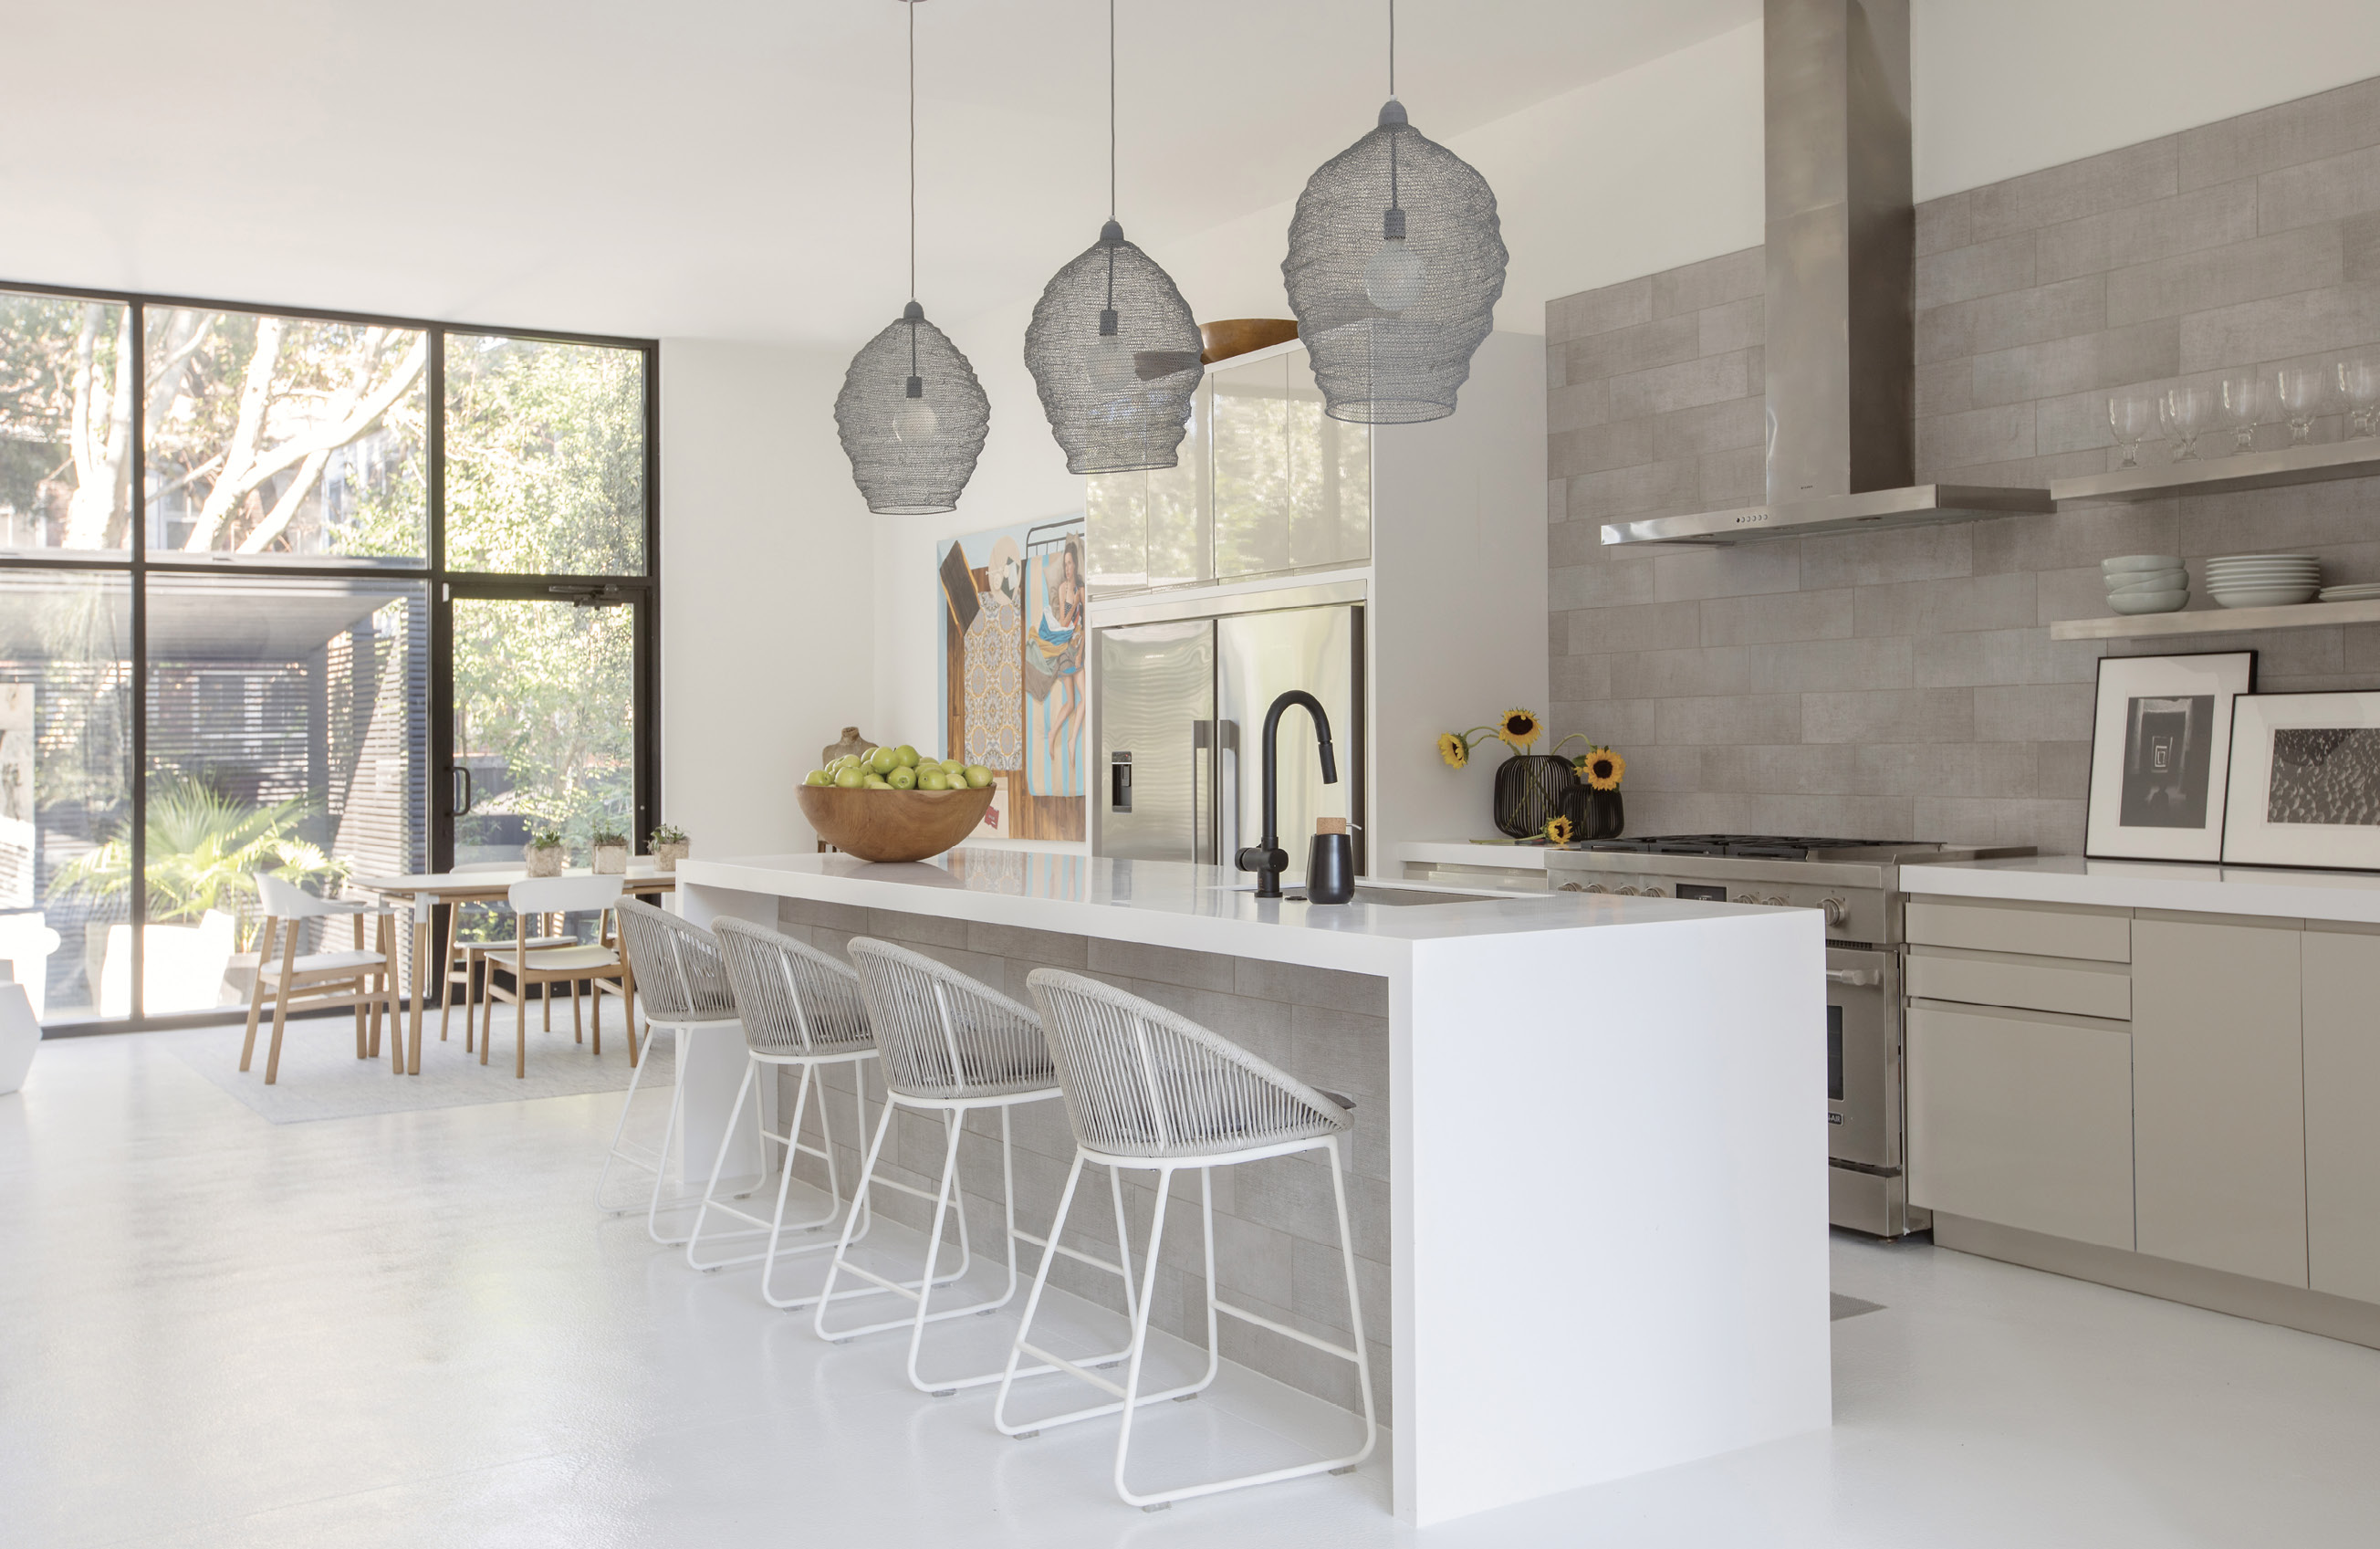 "WHITE SPACE: Mixing textures in white, black, and beige, the kitchen is Baldwin's quiet space. ""With the black exterior and all white interior, I was drawn to a middle ground, and that manifested in a neutral-toned kitchen,"" she says. ""It allows you to have that burst of color as an offset."" Wire pendant lights from Denmark tie in to the industrial feel of the retail-style doors and windows; Teak Warehouse stools complete the look."